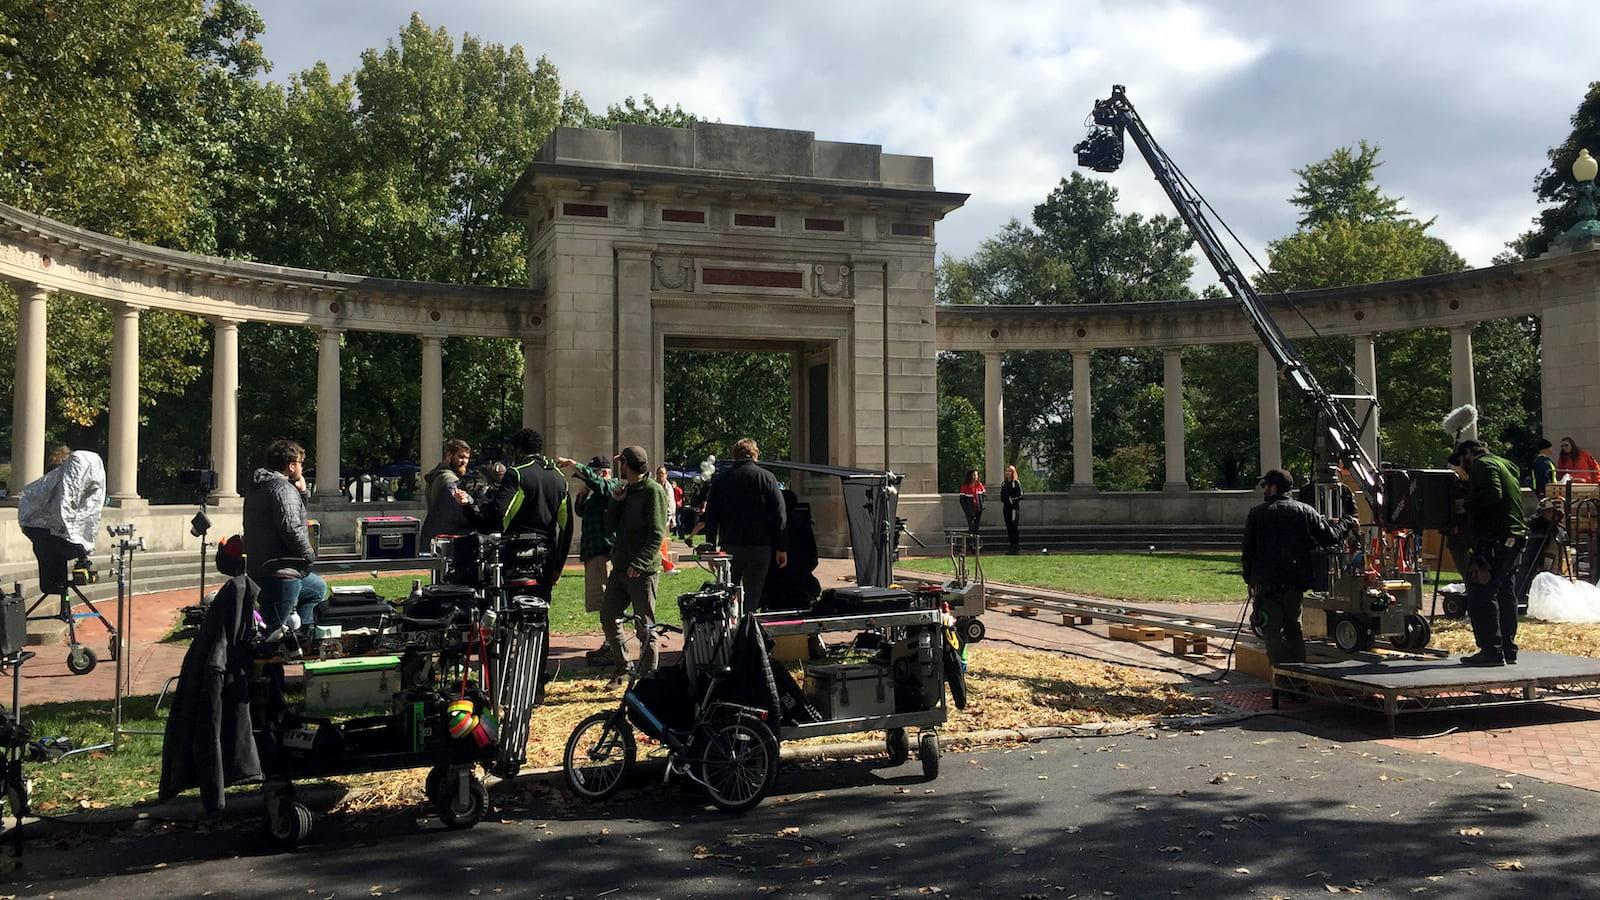 Crew from a TV show filming on Tappan Square.